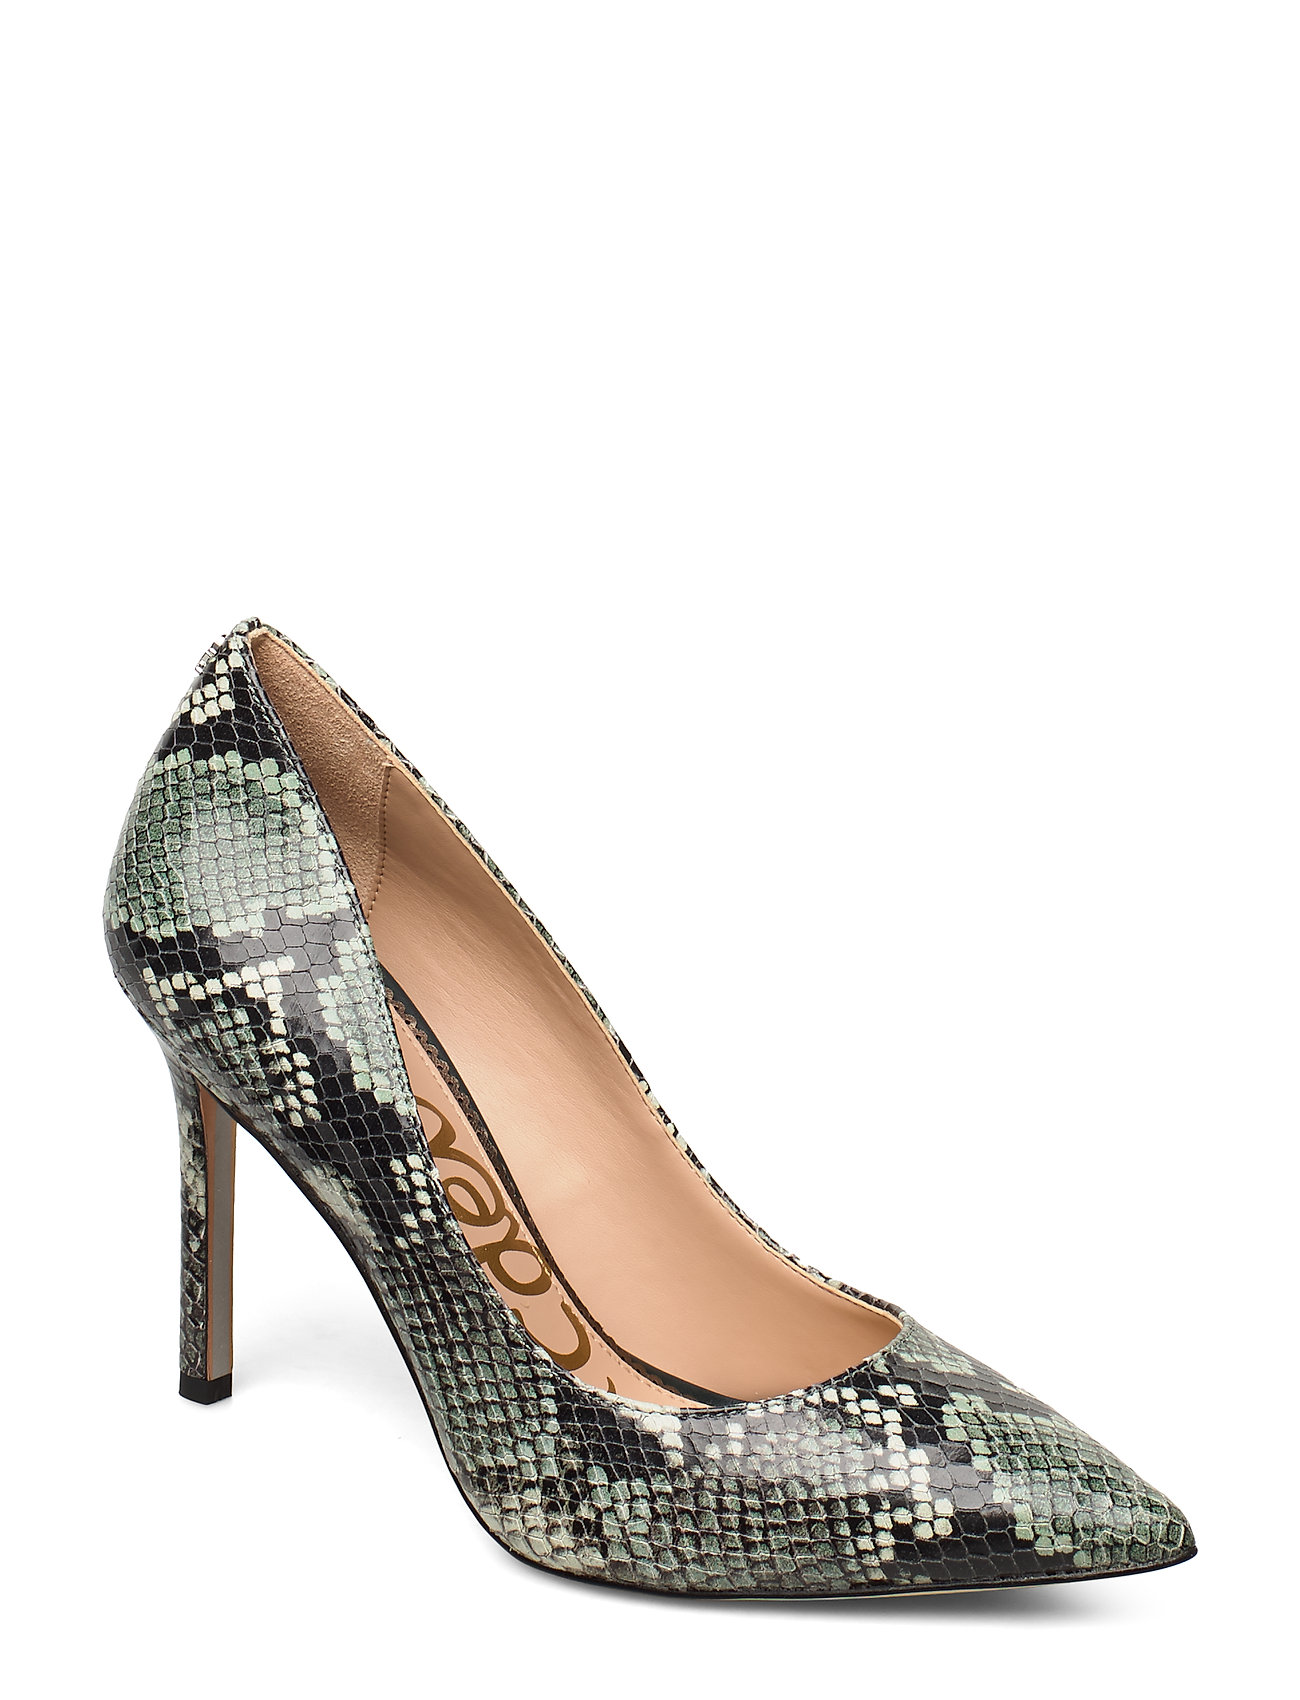 Sam Edelman HAZEL - MINT MULTI